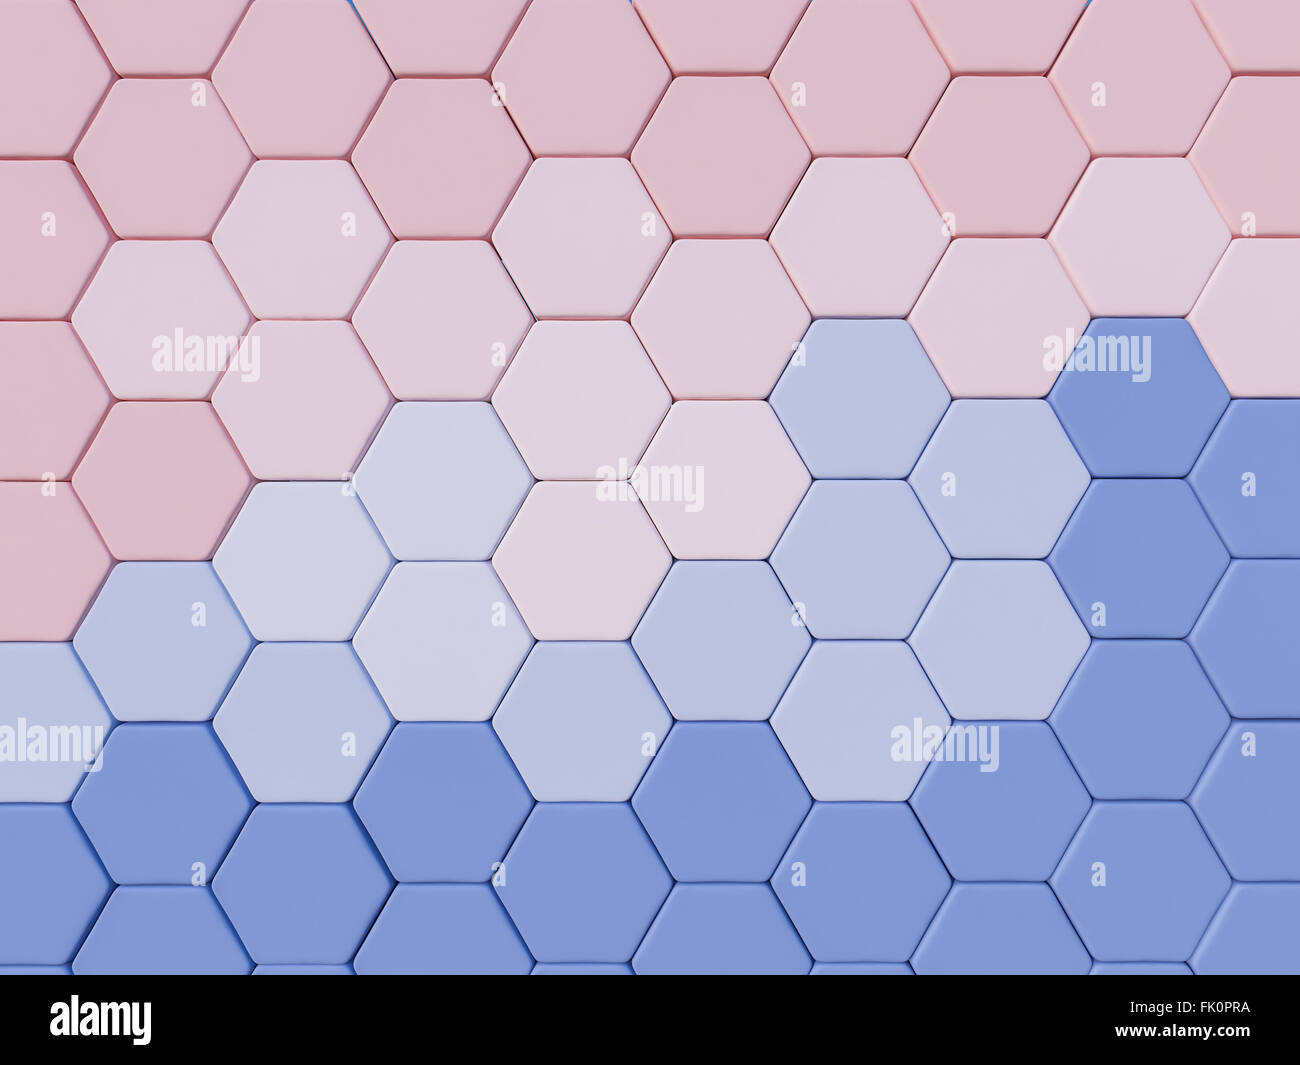 Serenity Blue and Rose Quartz  abstract 3d hexagon background - Stock Image